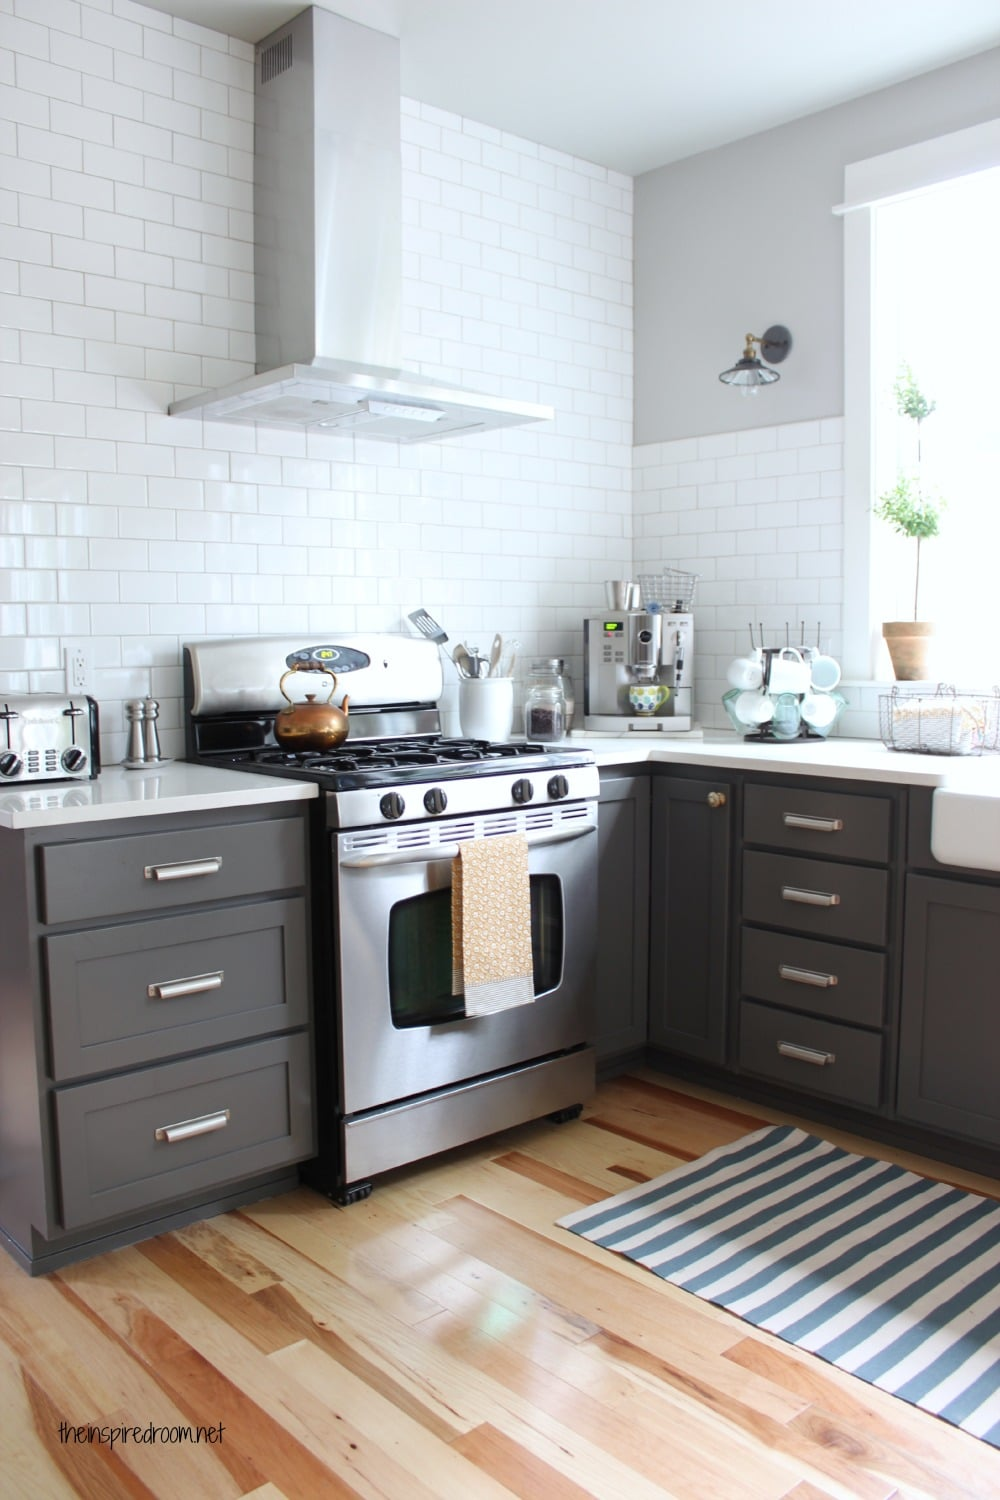 Kitchen Cabinet Colors Before After The Inspired Room - Grey and white kitchen units